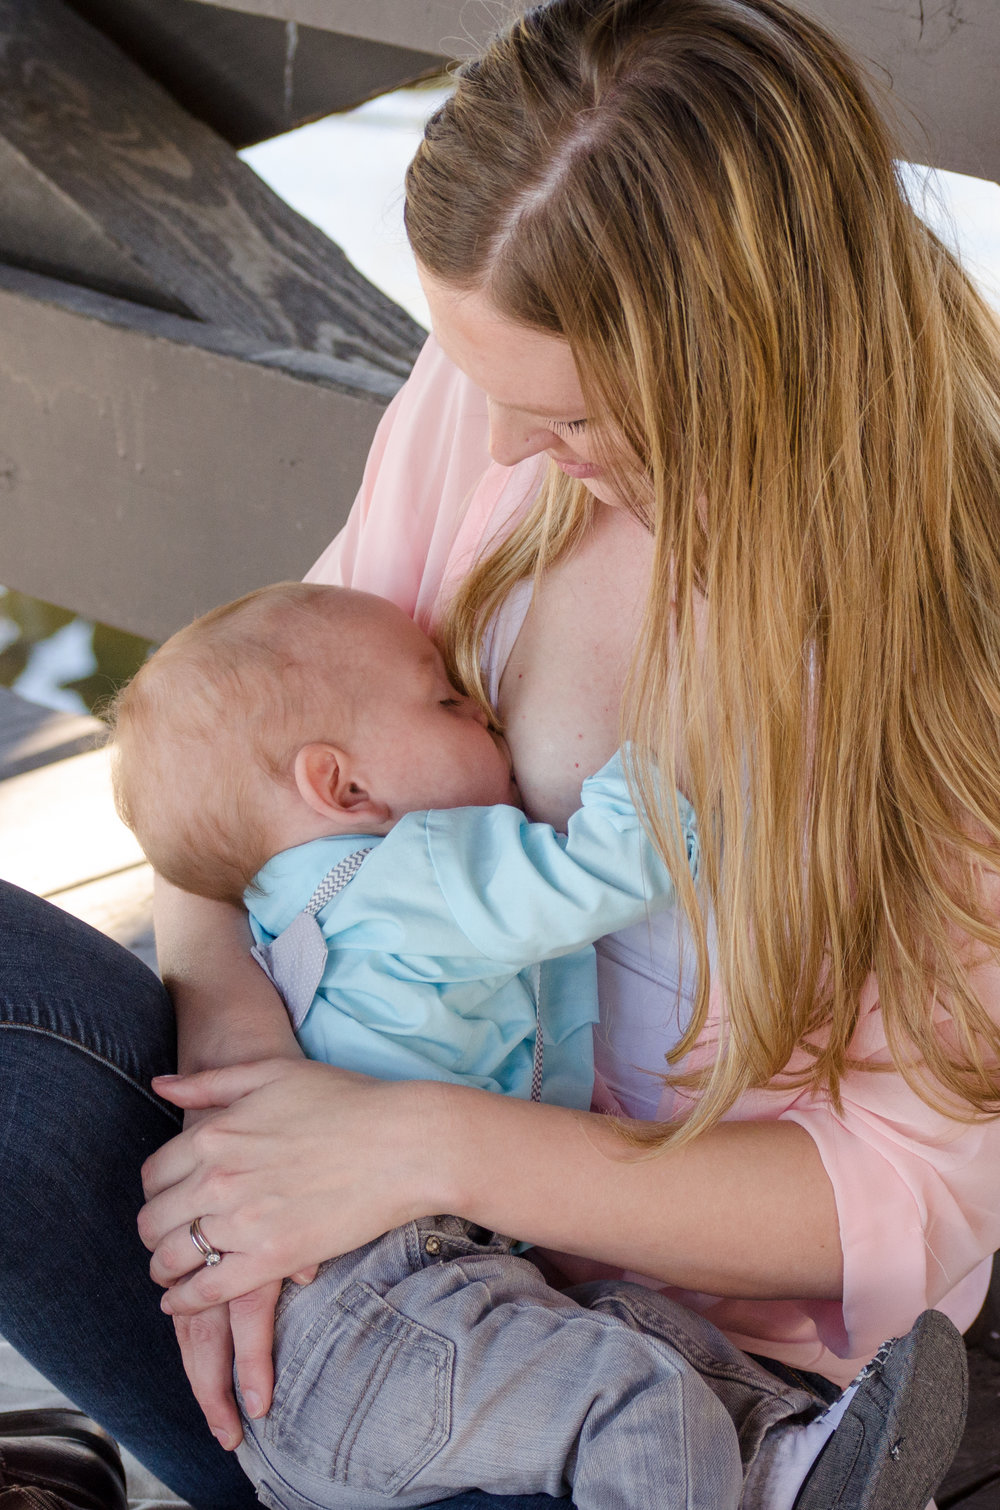 Breastfeed youth, normalize, mommy snuggles